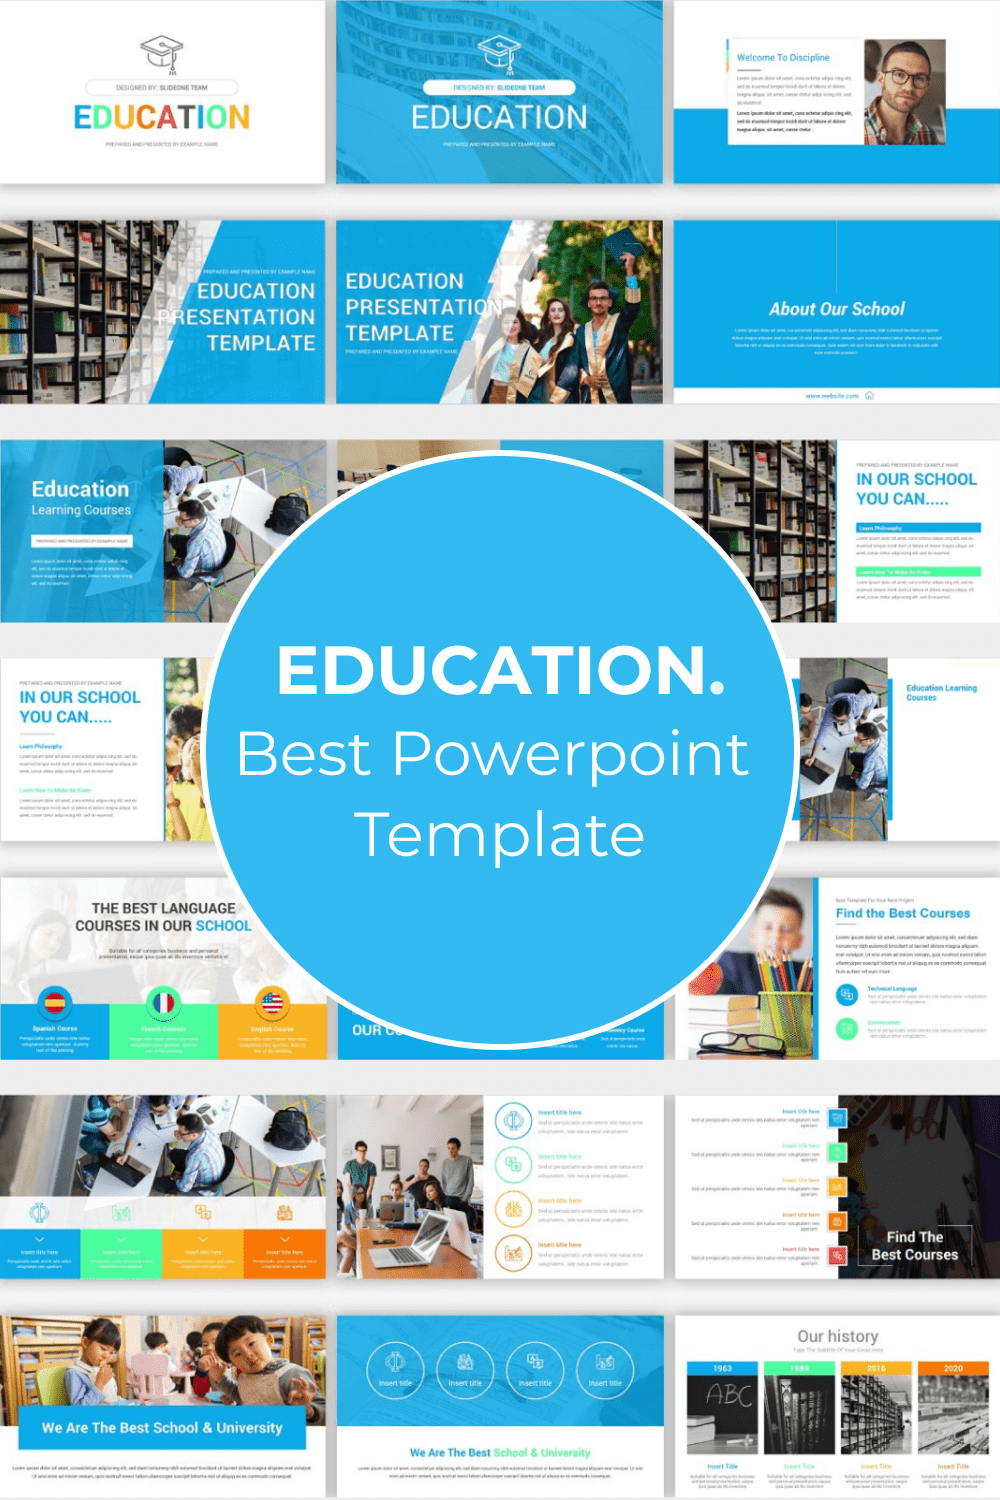 This is the perfect template for educational purposes. It will help convey even the most complex information to the audience.